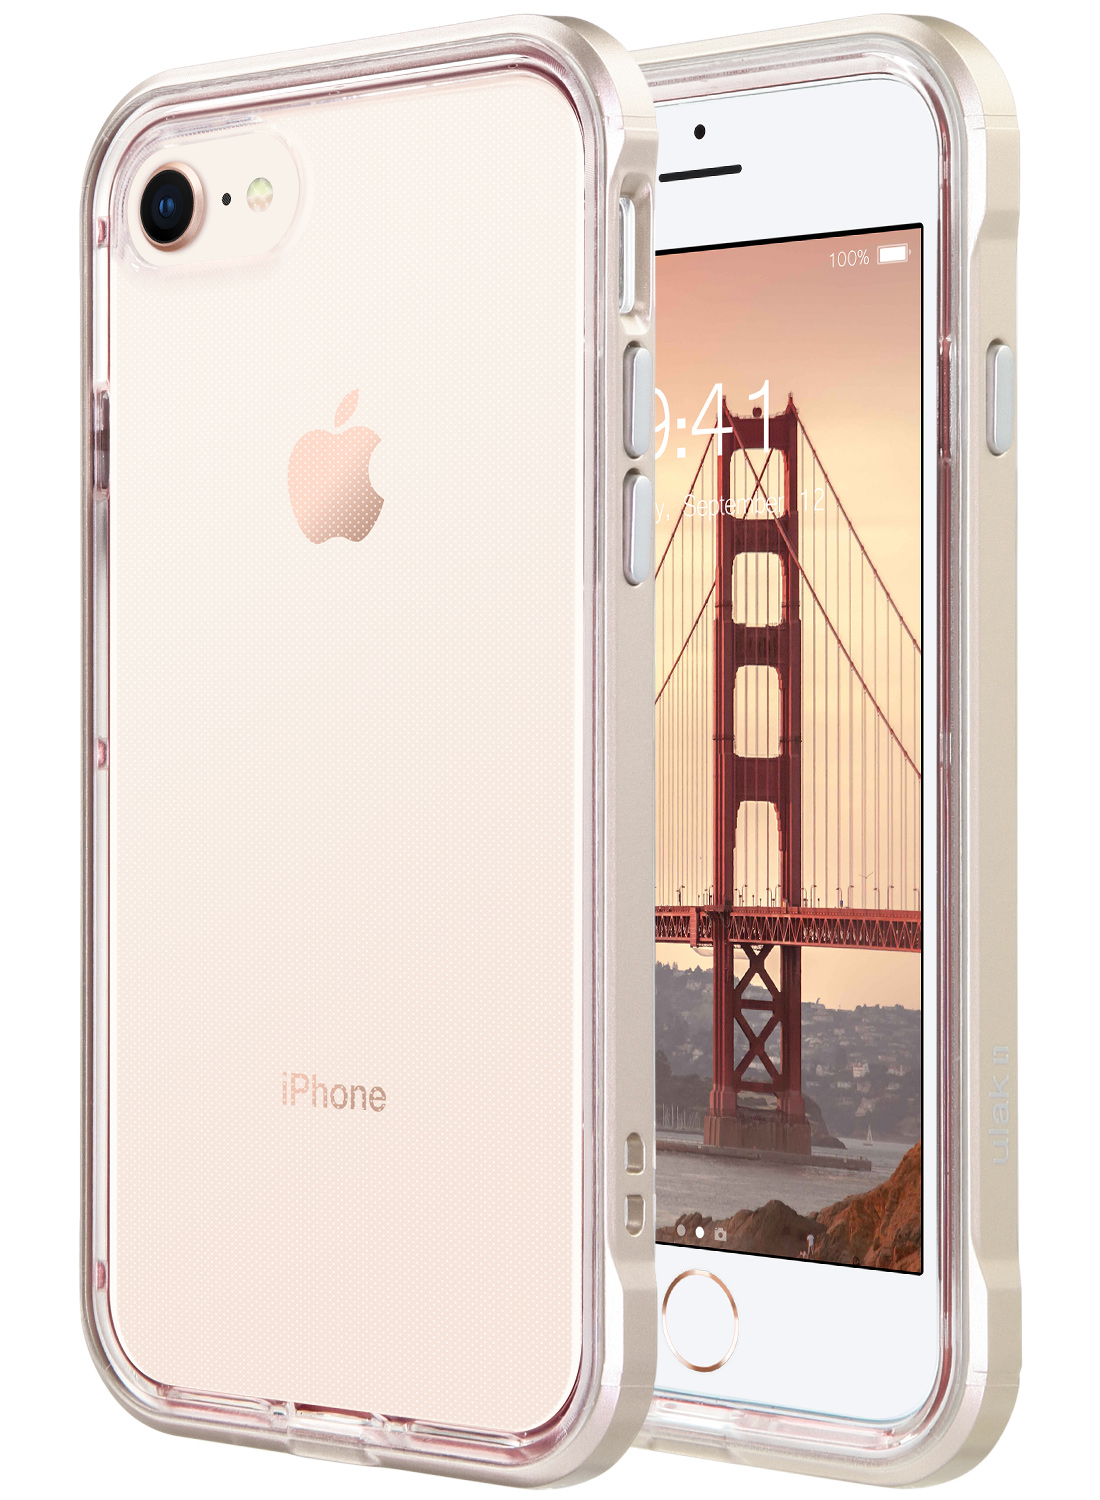 iPhone 7 4 7 Case, ULAK Reinforced Frame Crystal Clear PC